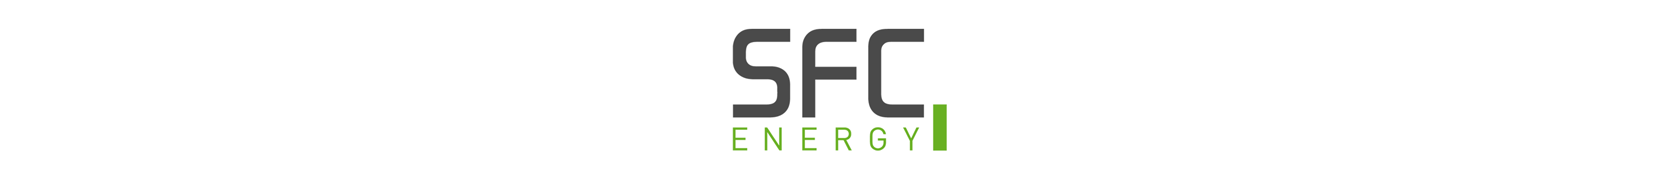 sfc_energy.png